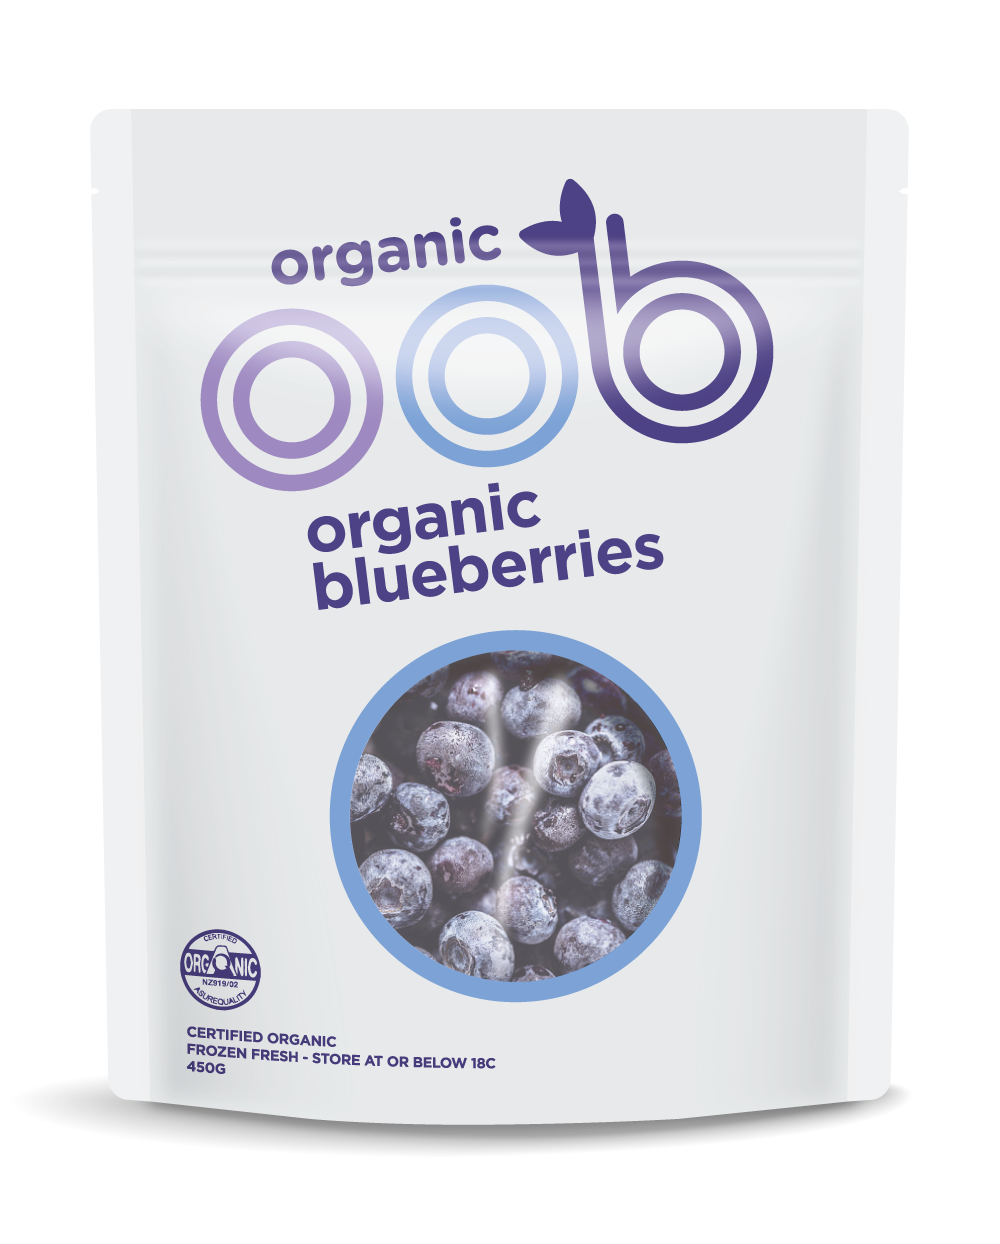 33845-OOB-Single-Fruit-Range-Blueberries-Mockup.png